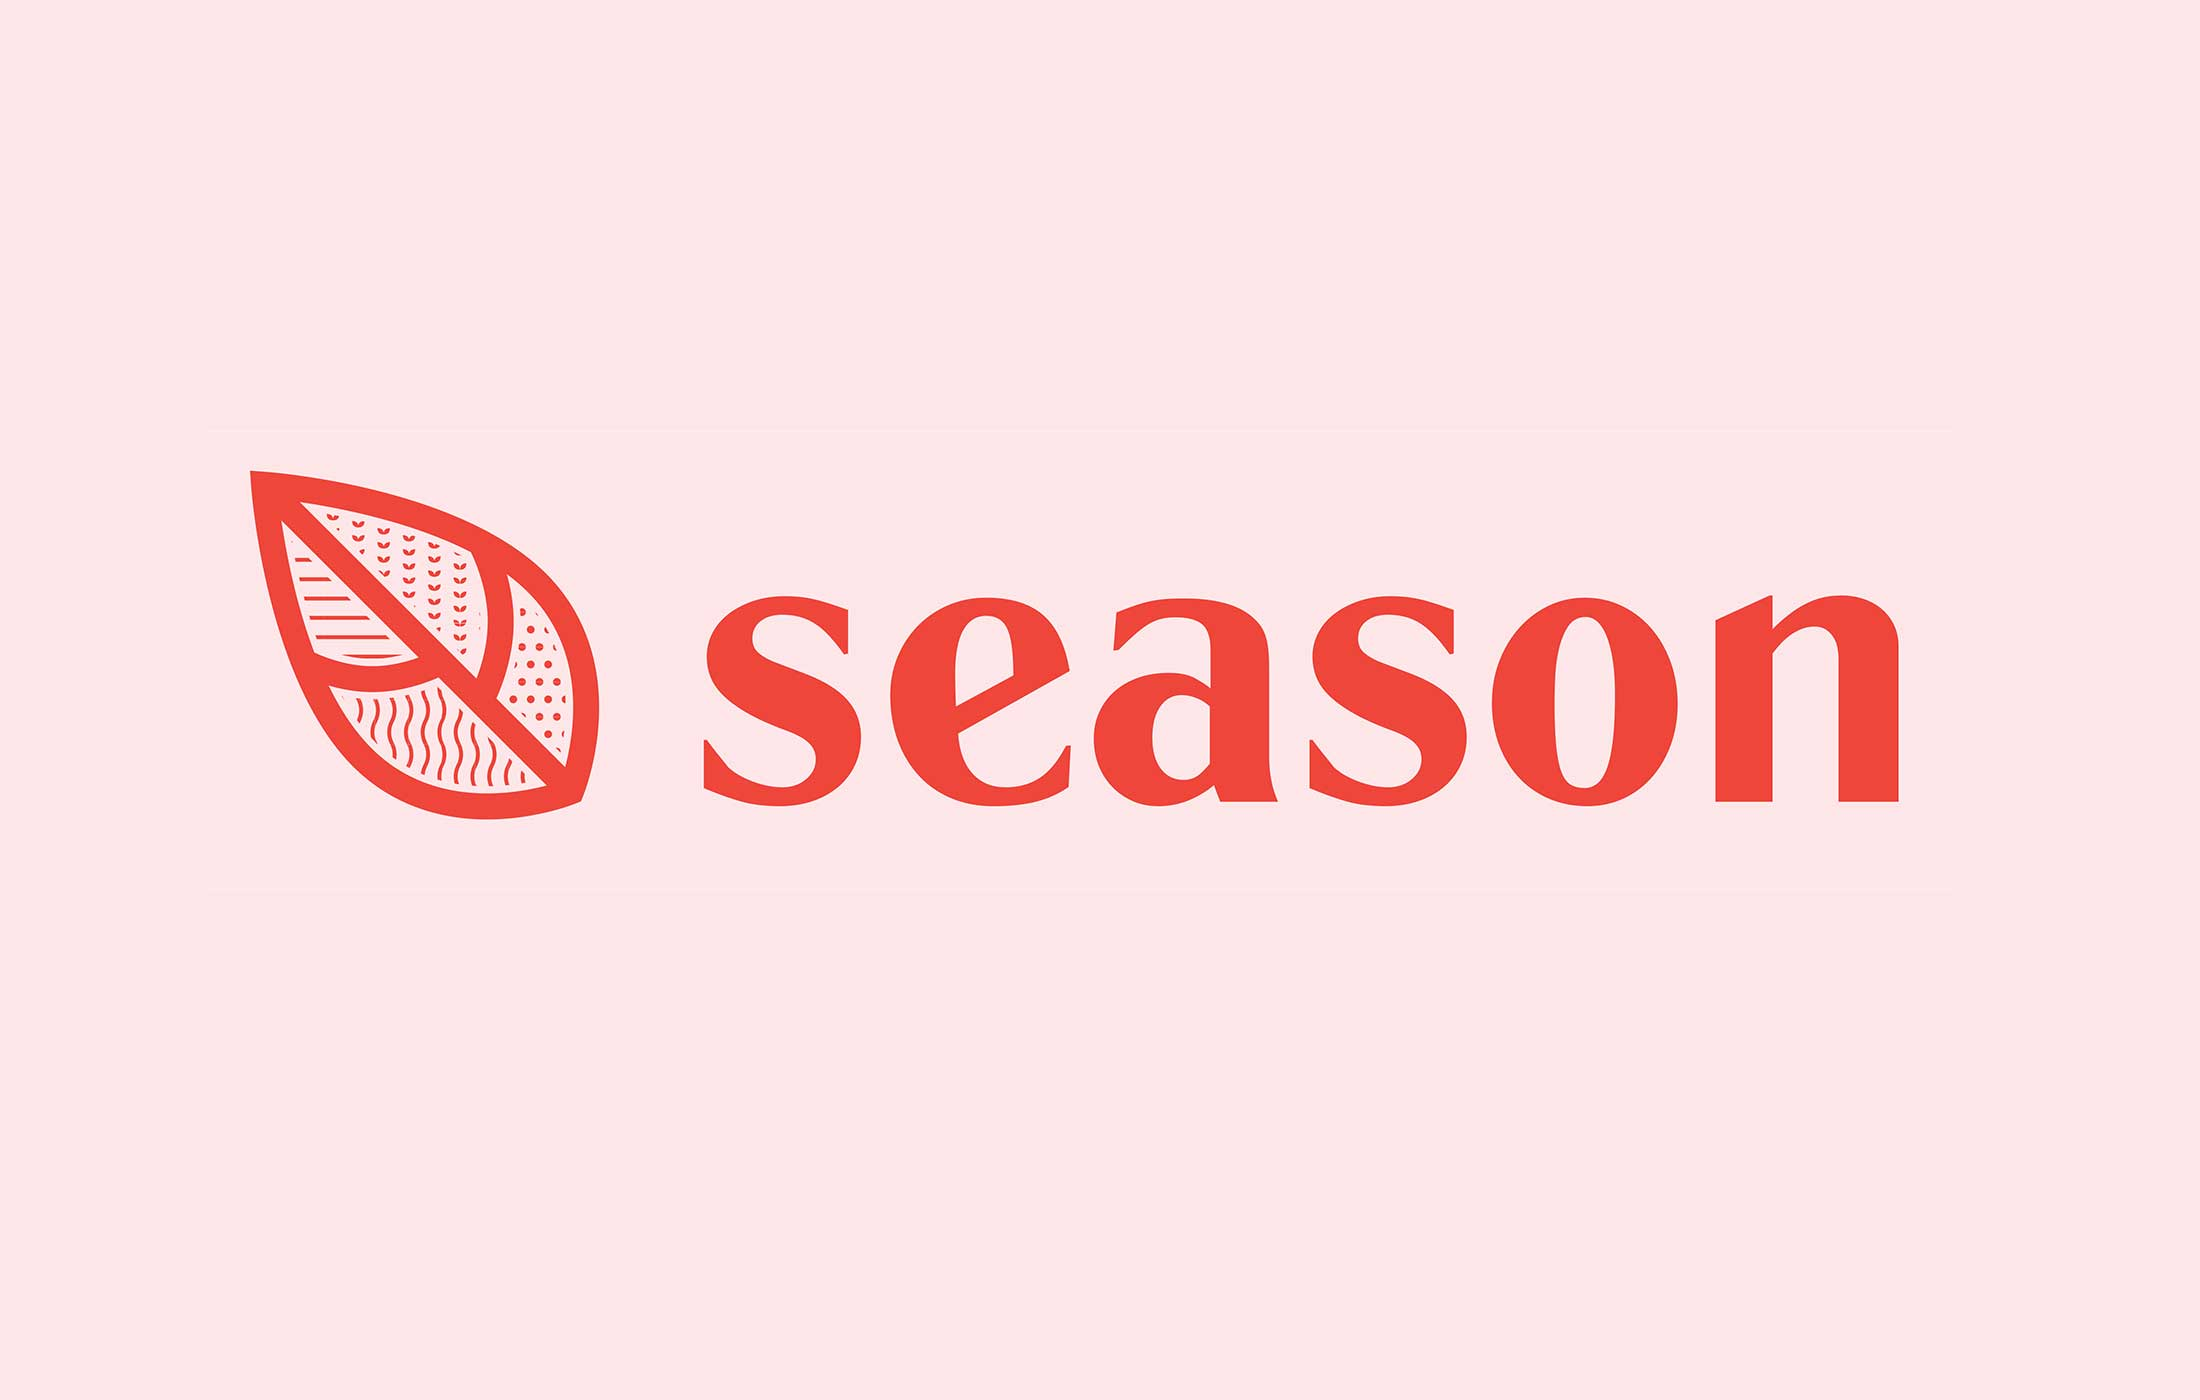 Season visual identity